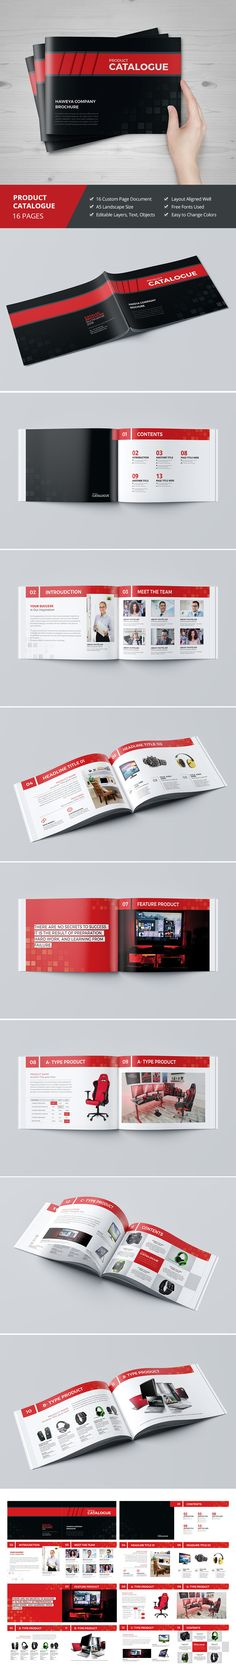 """Check out my @Behance project: """"Haweya Multipurpose Cataloge 16 Pages"""" https://www.behance.net/gallery/54364787/Haweya-Multipurpose-Cataloge-16-Pages"""